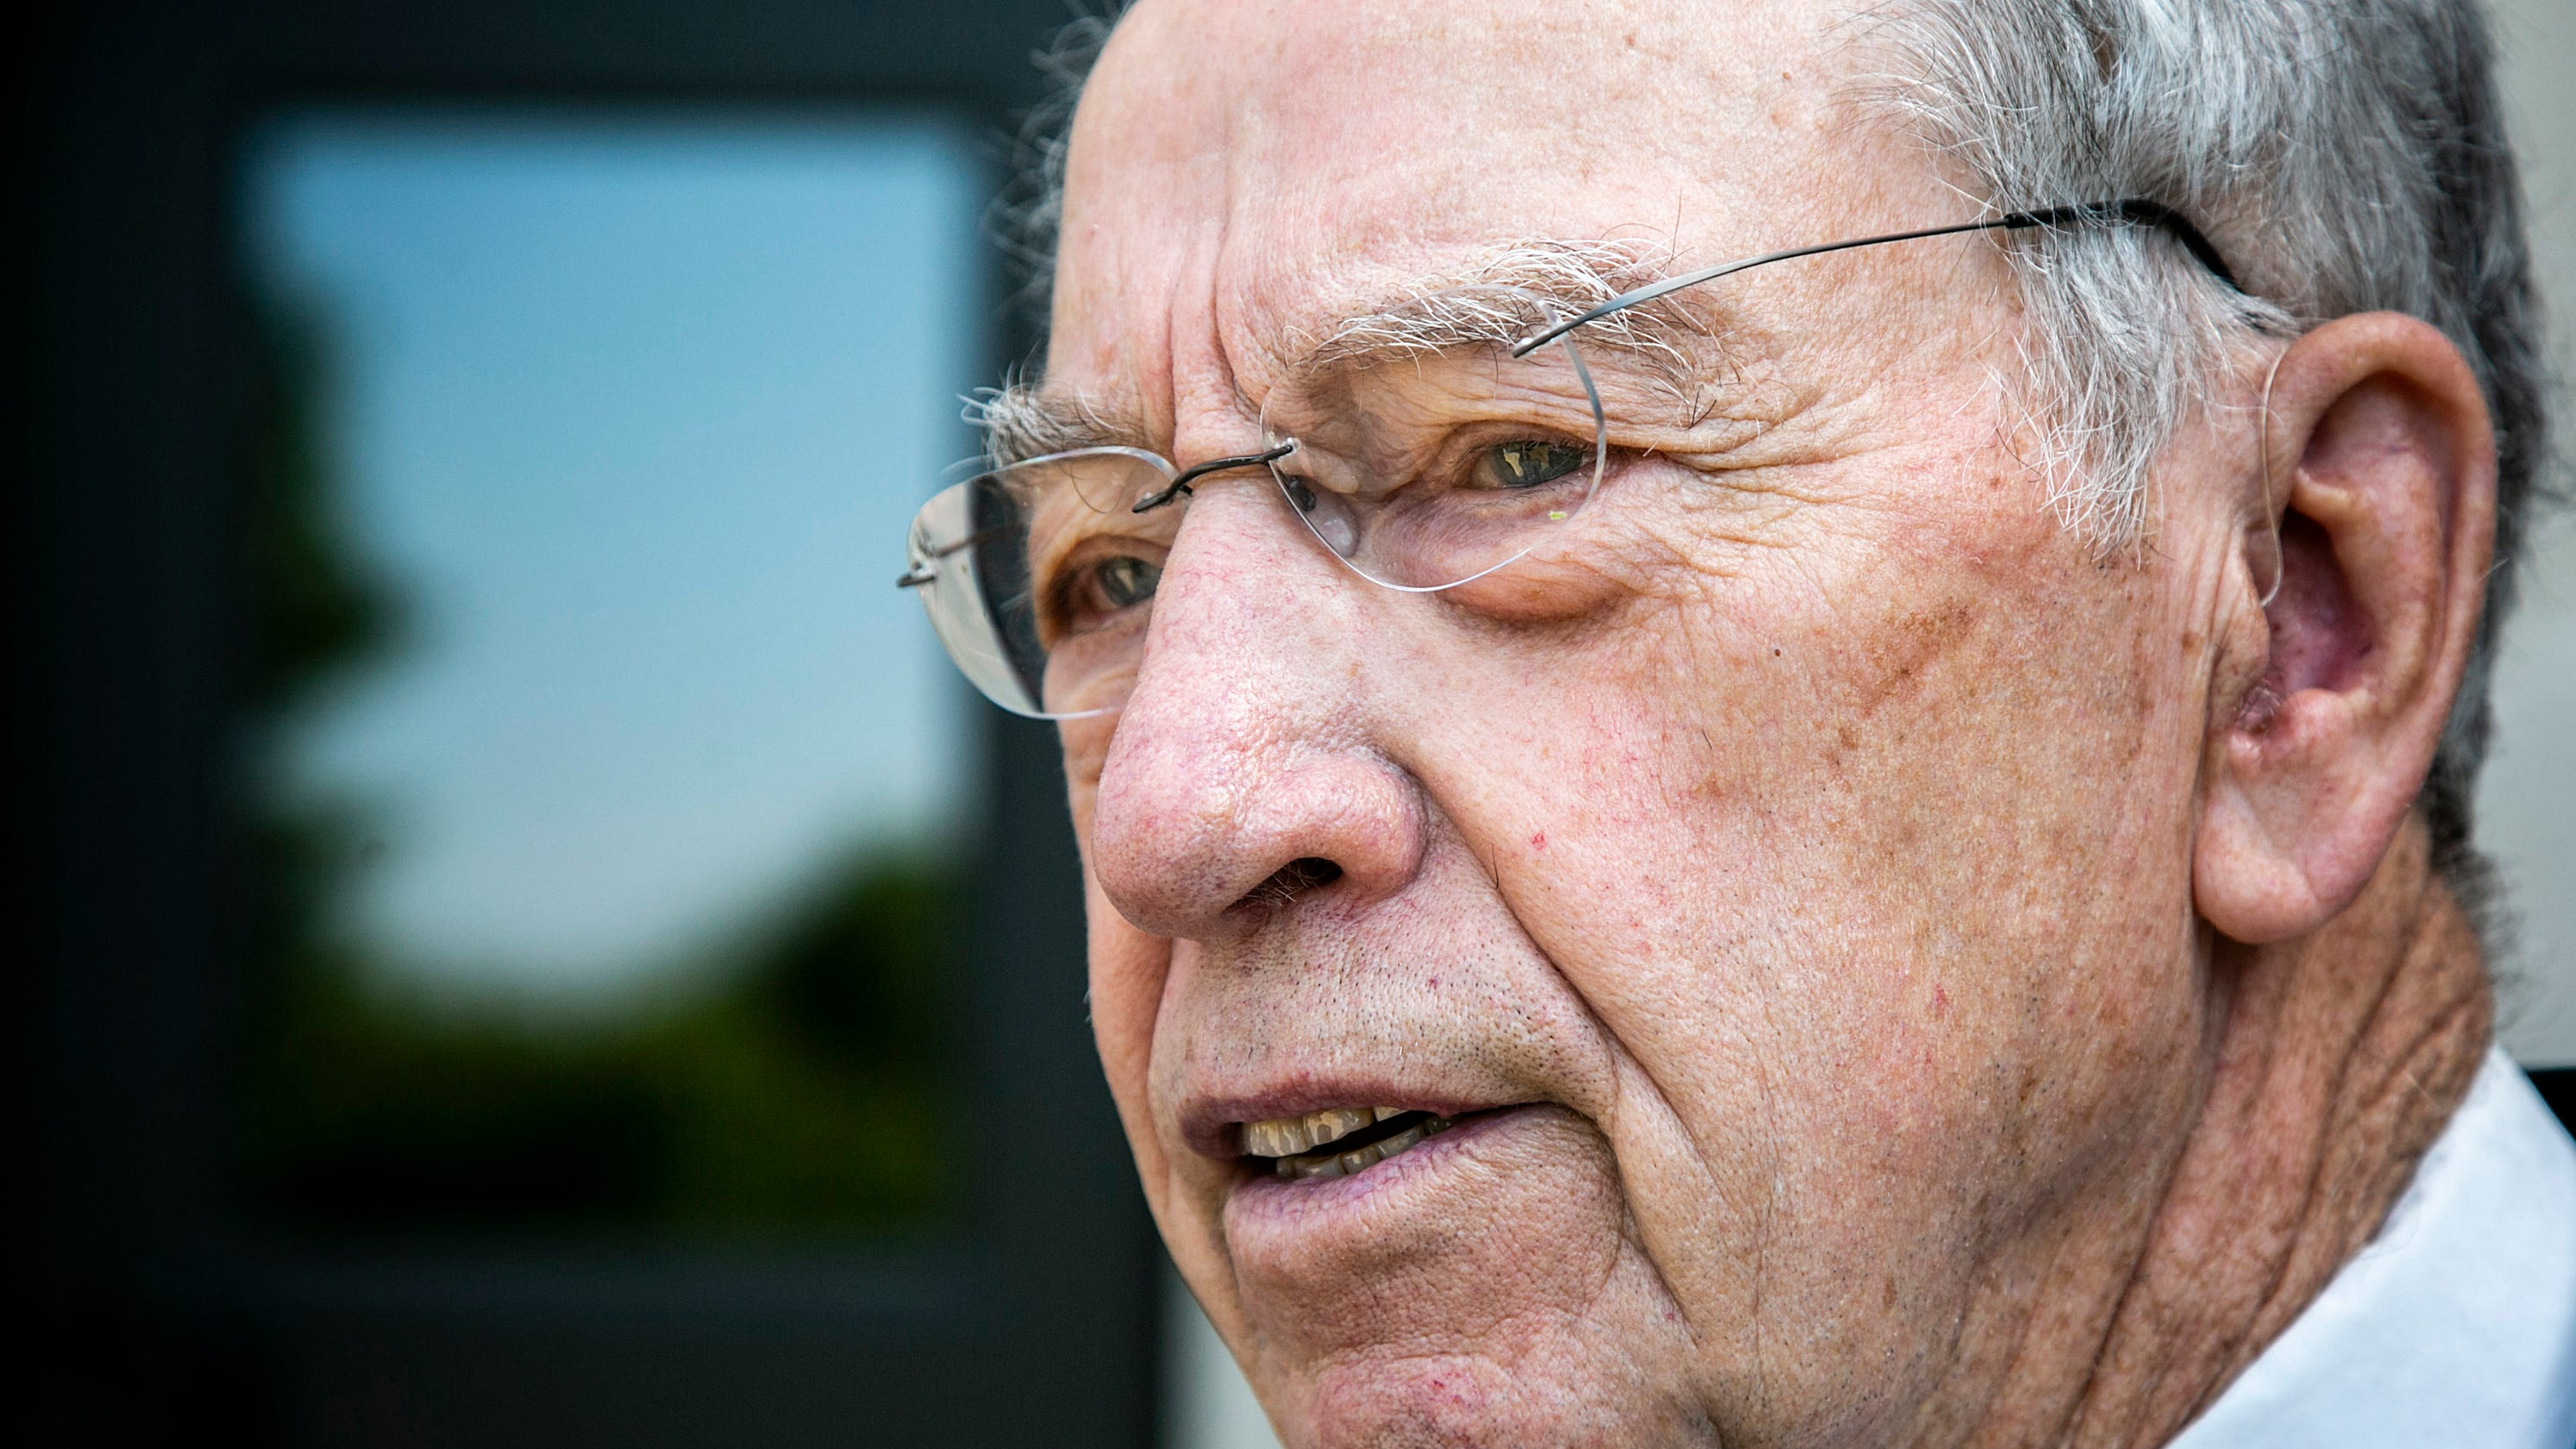 Is U.S. Sen. Chuck Grassley now 'vincible'? In new Iowa Poll, nearly two-thirds say it's time for someone new